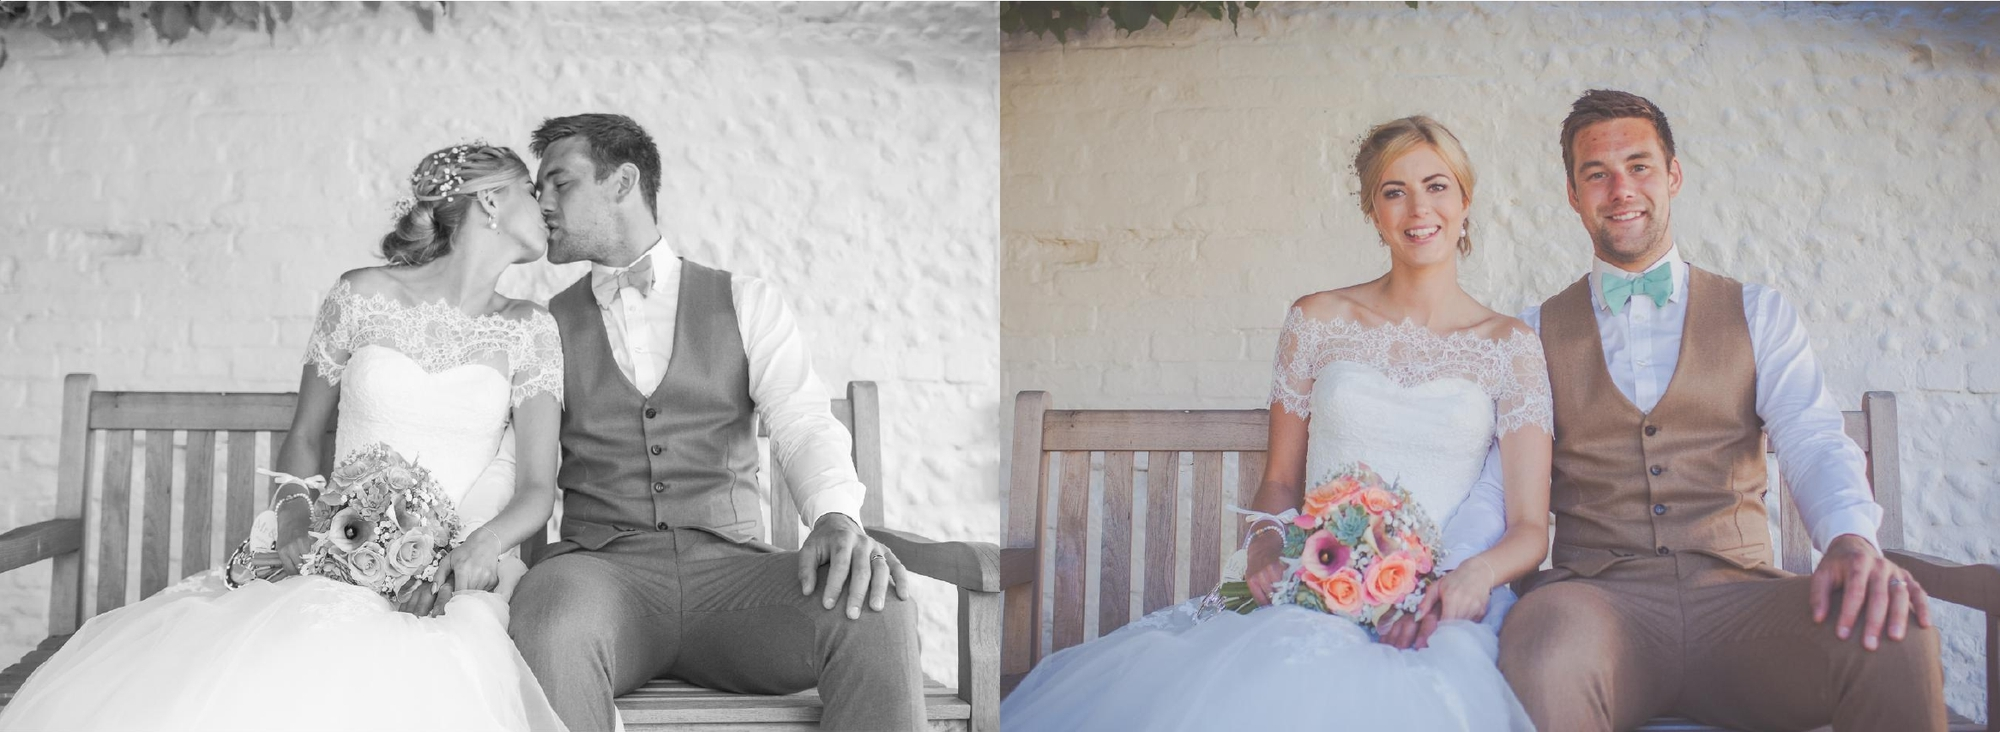 Southend Barns Wedding Photographers Justine Claire Chichester 14 .jpg